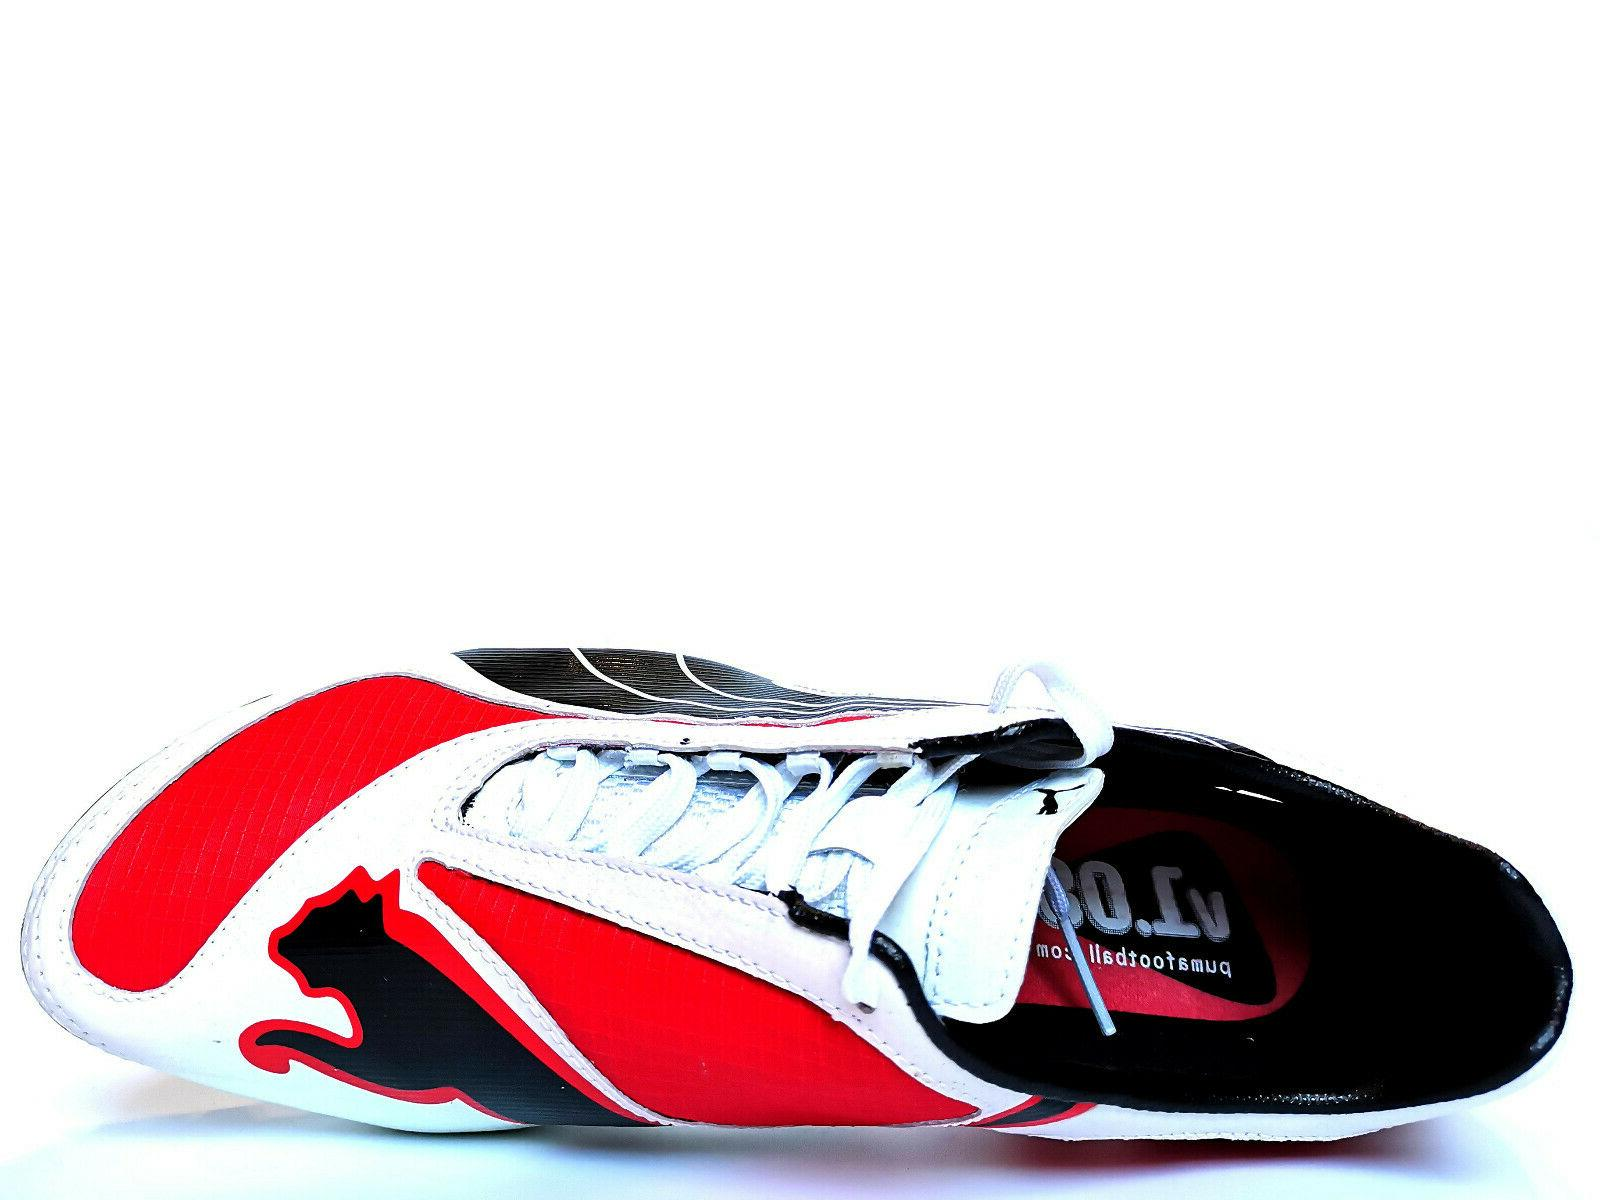 101455-02 PUMA V1.08 FG UK FOOTBALL BOOTS SOCCER